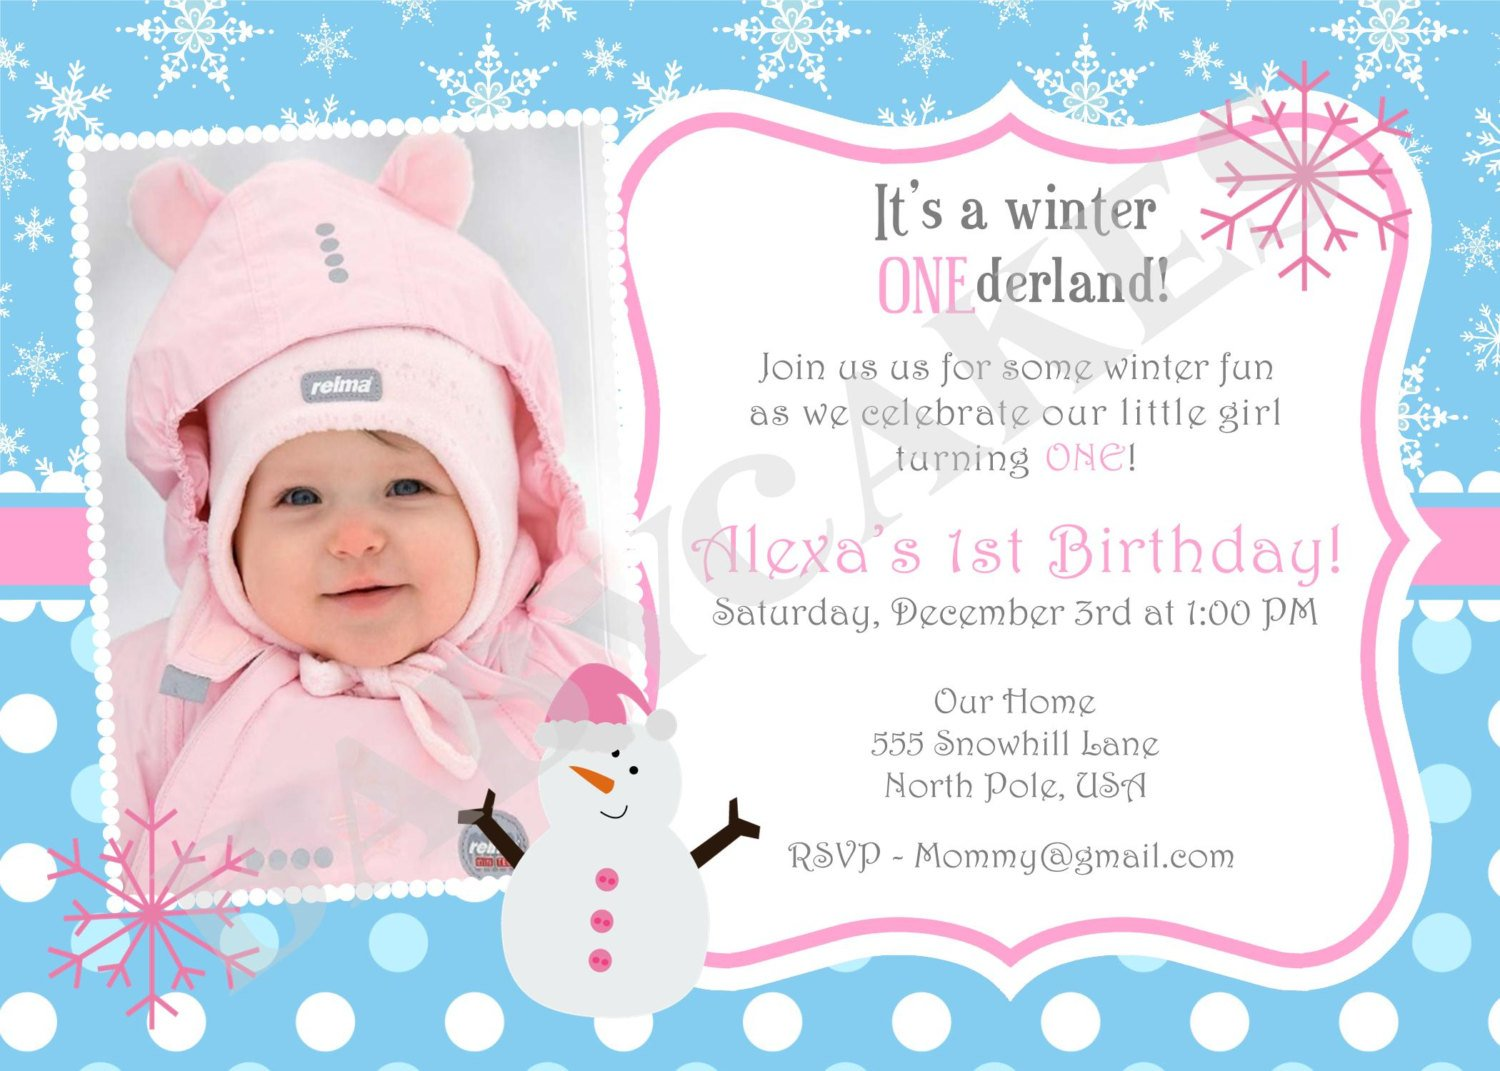 Birthday Invitations Ideas Winter 1st Wording